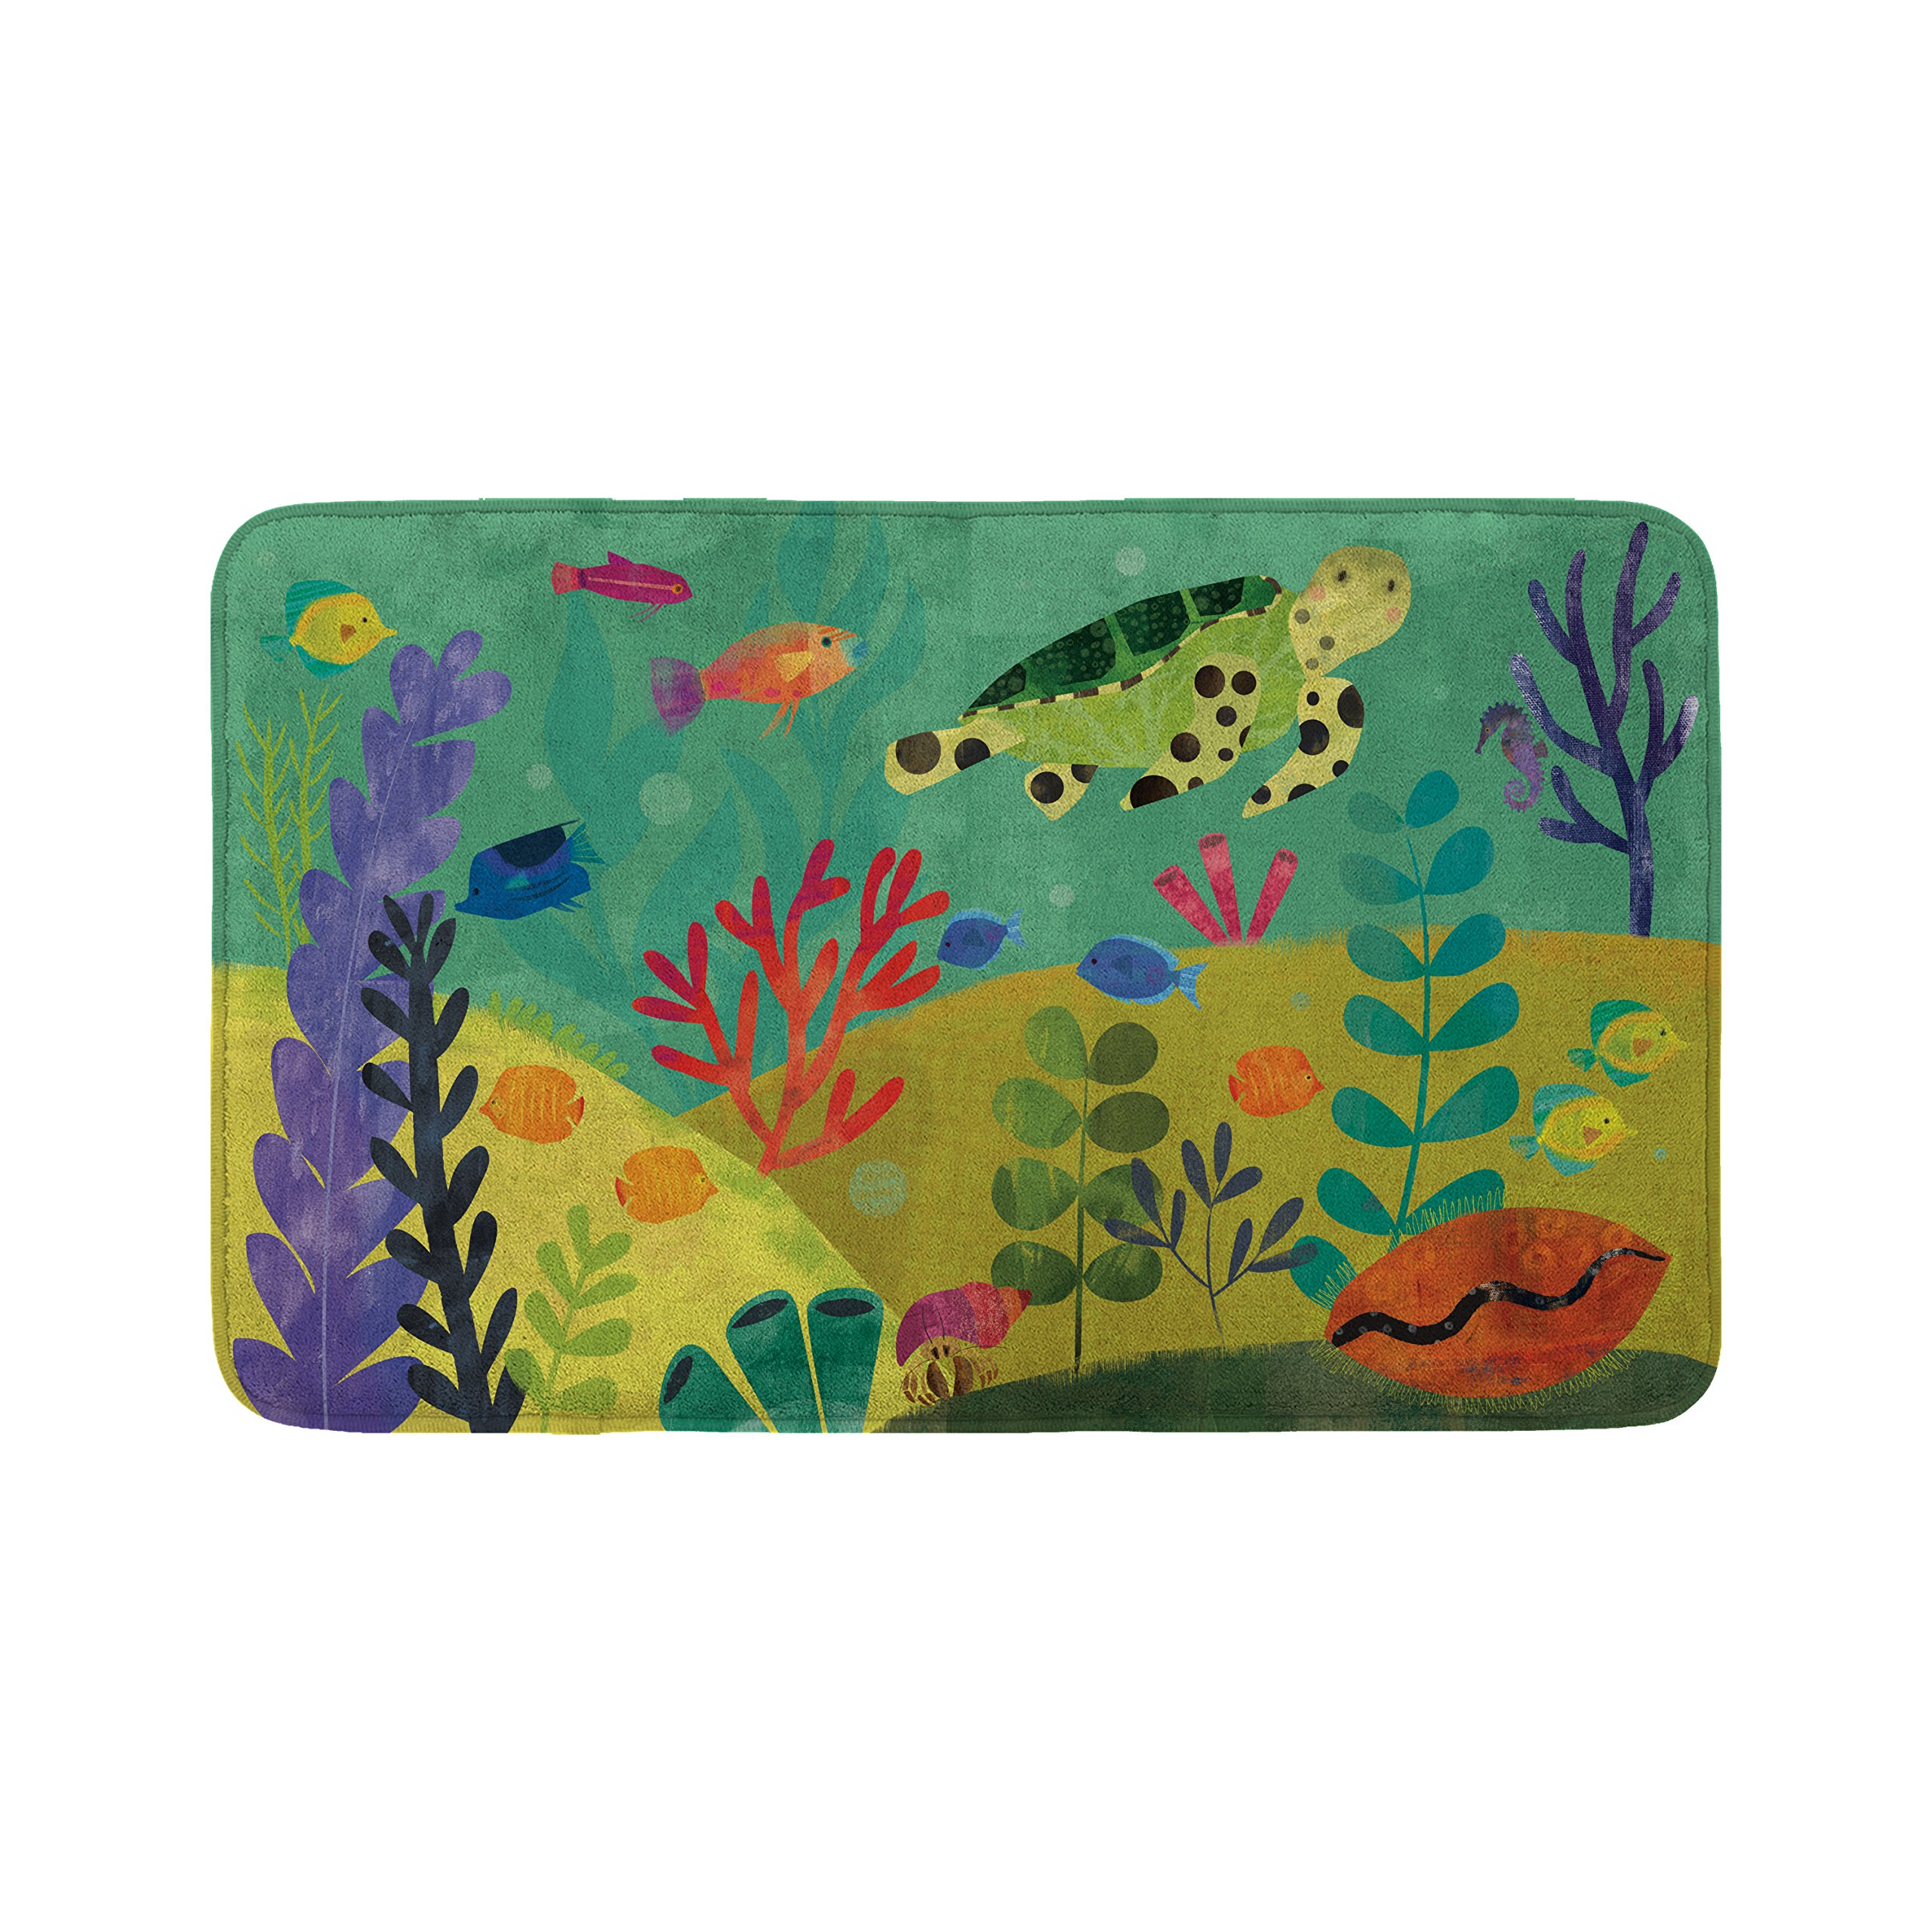 Mouse + Magpie Bath Mat, Skid-Proof, Memory Foam, Soft, Quick-Dry Microfiber, 31''x19'' for Toddler, Kid, Child Bathroom, Sea Turtle Reef